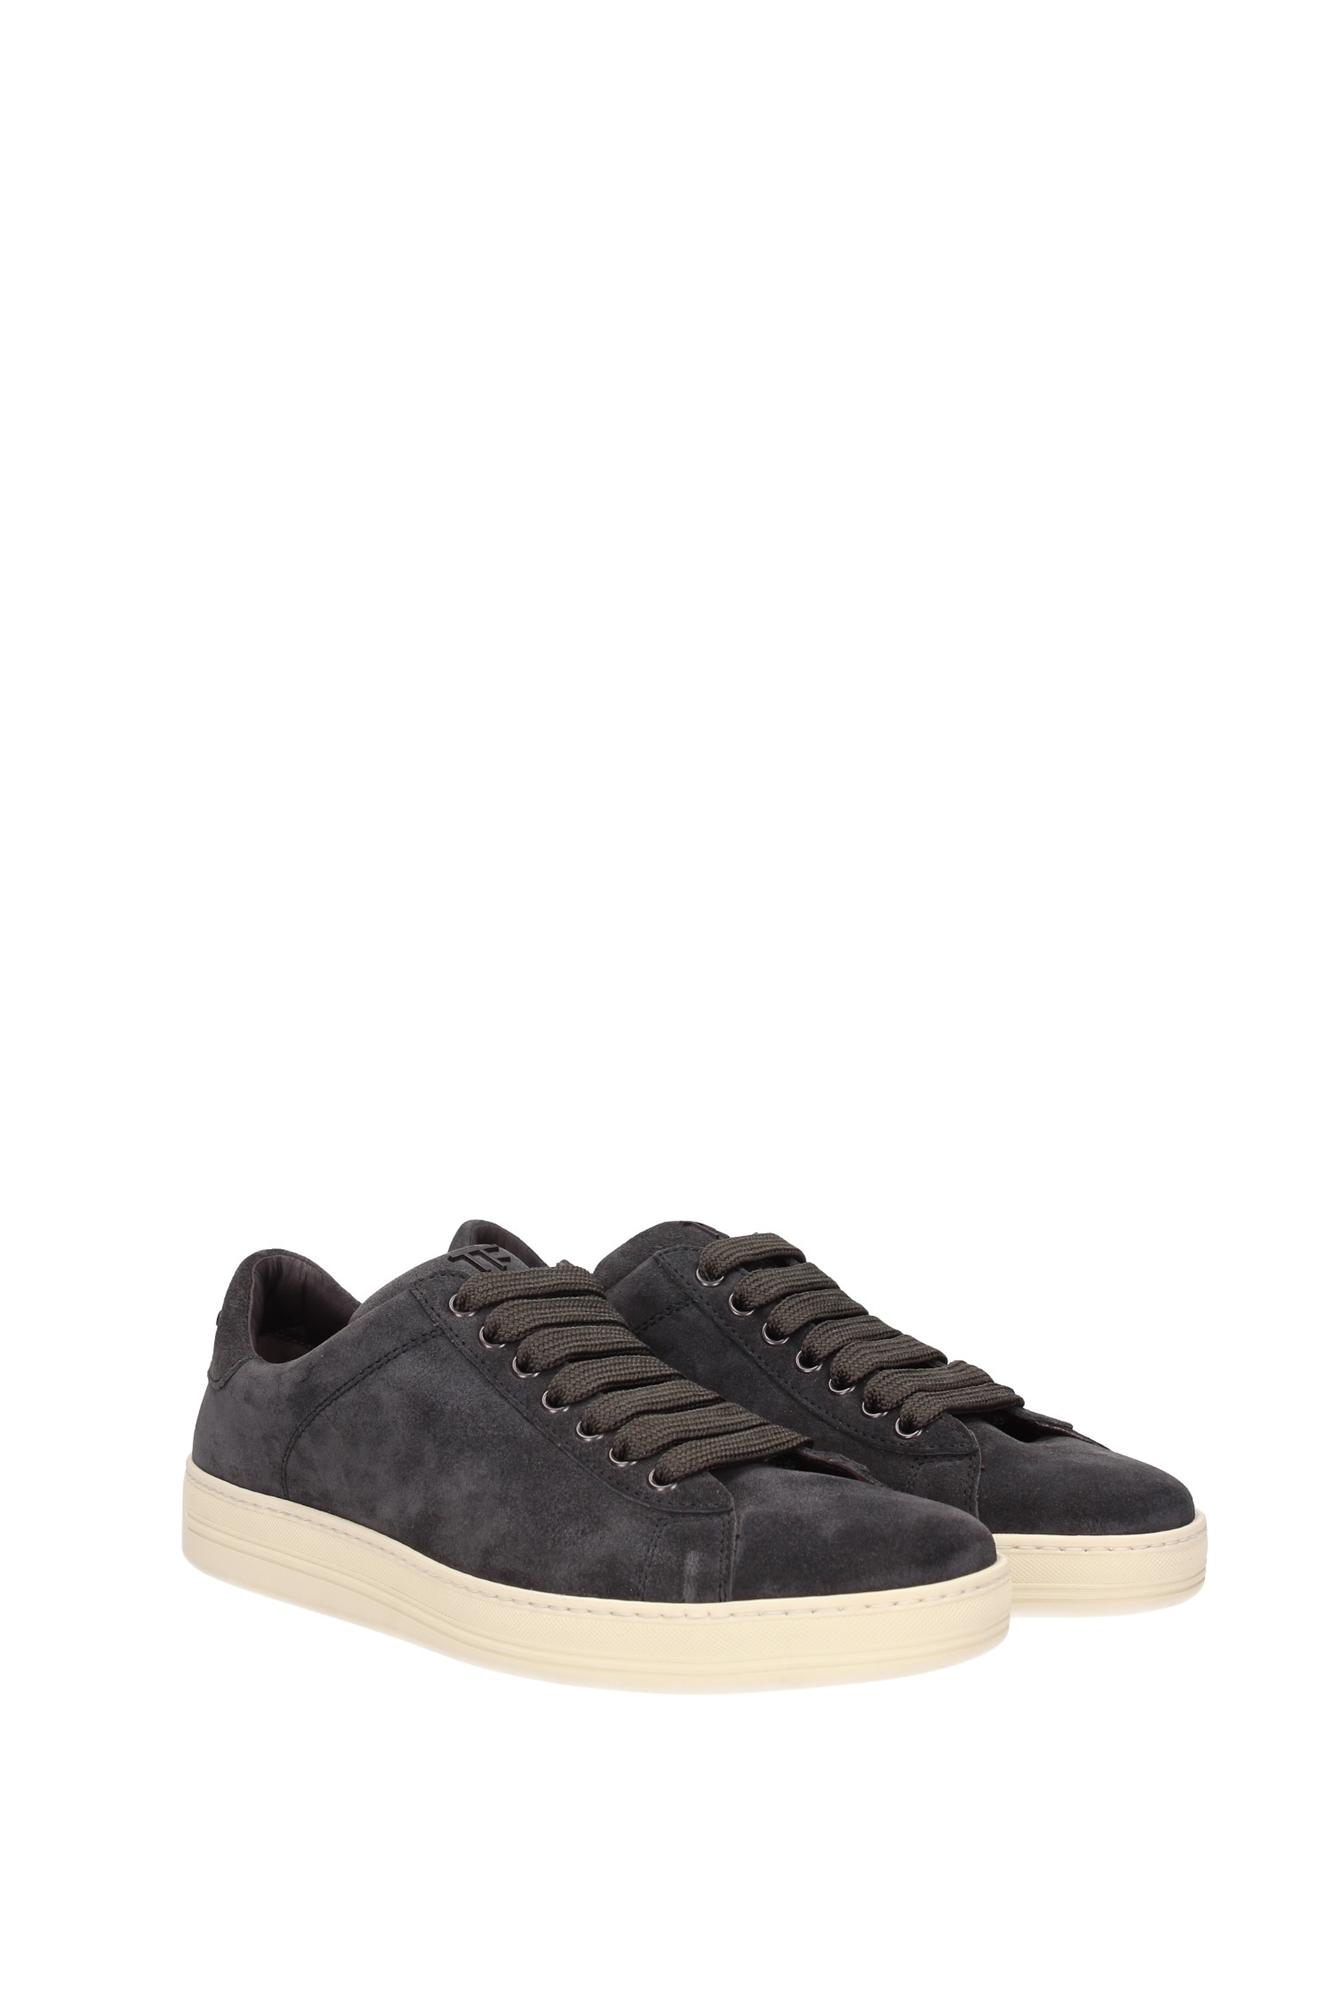 Sneakers Tom Ford Men Suede Gray 51J0866TCGRLAV